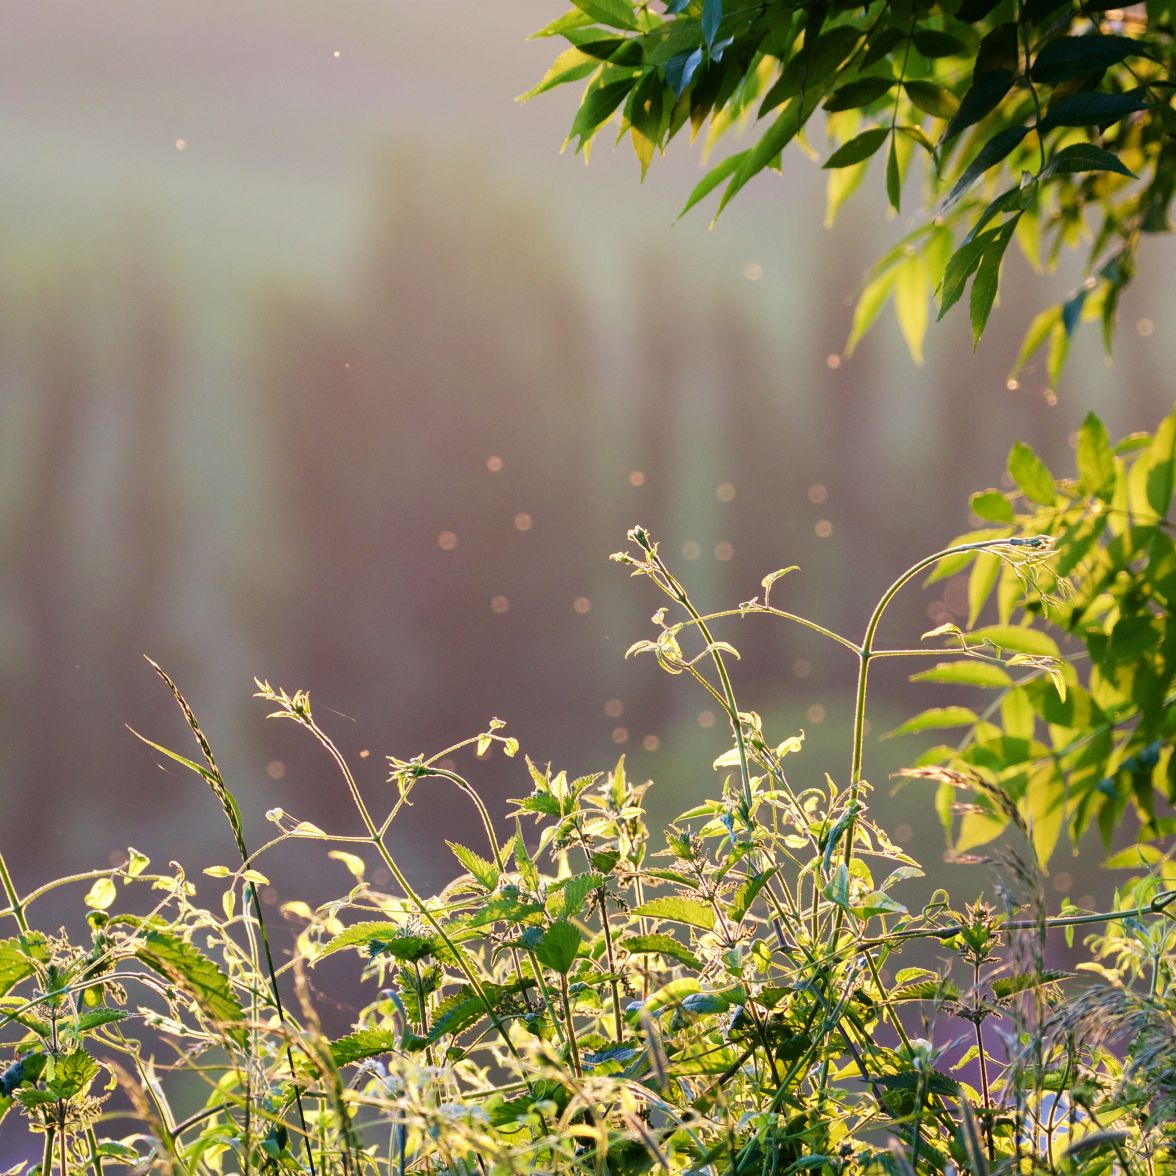 Evening light: clematis and ash